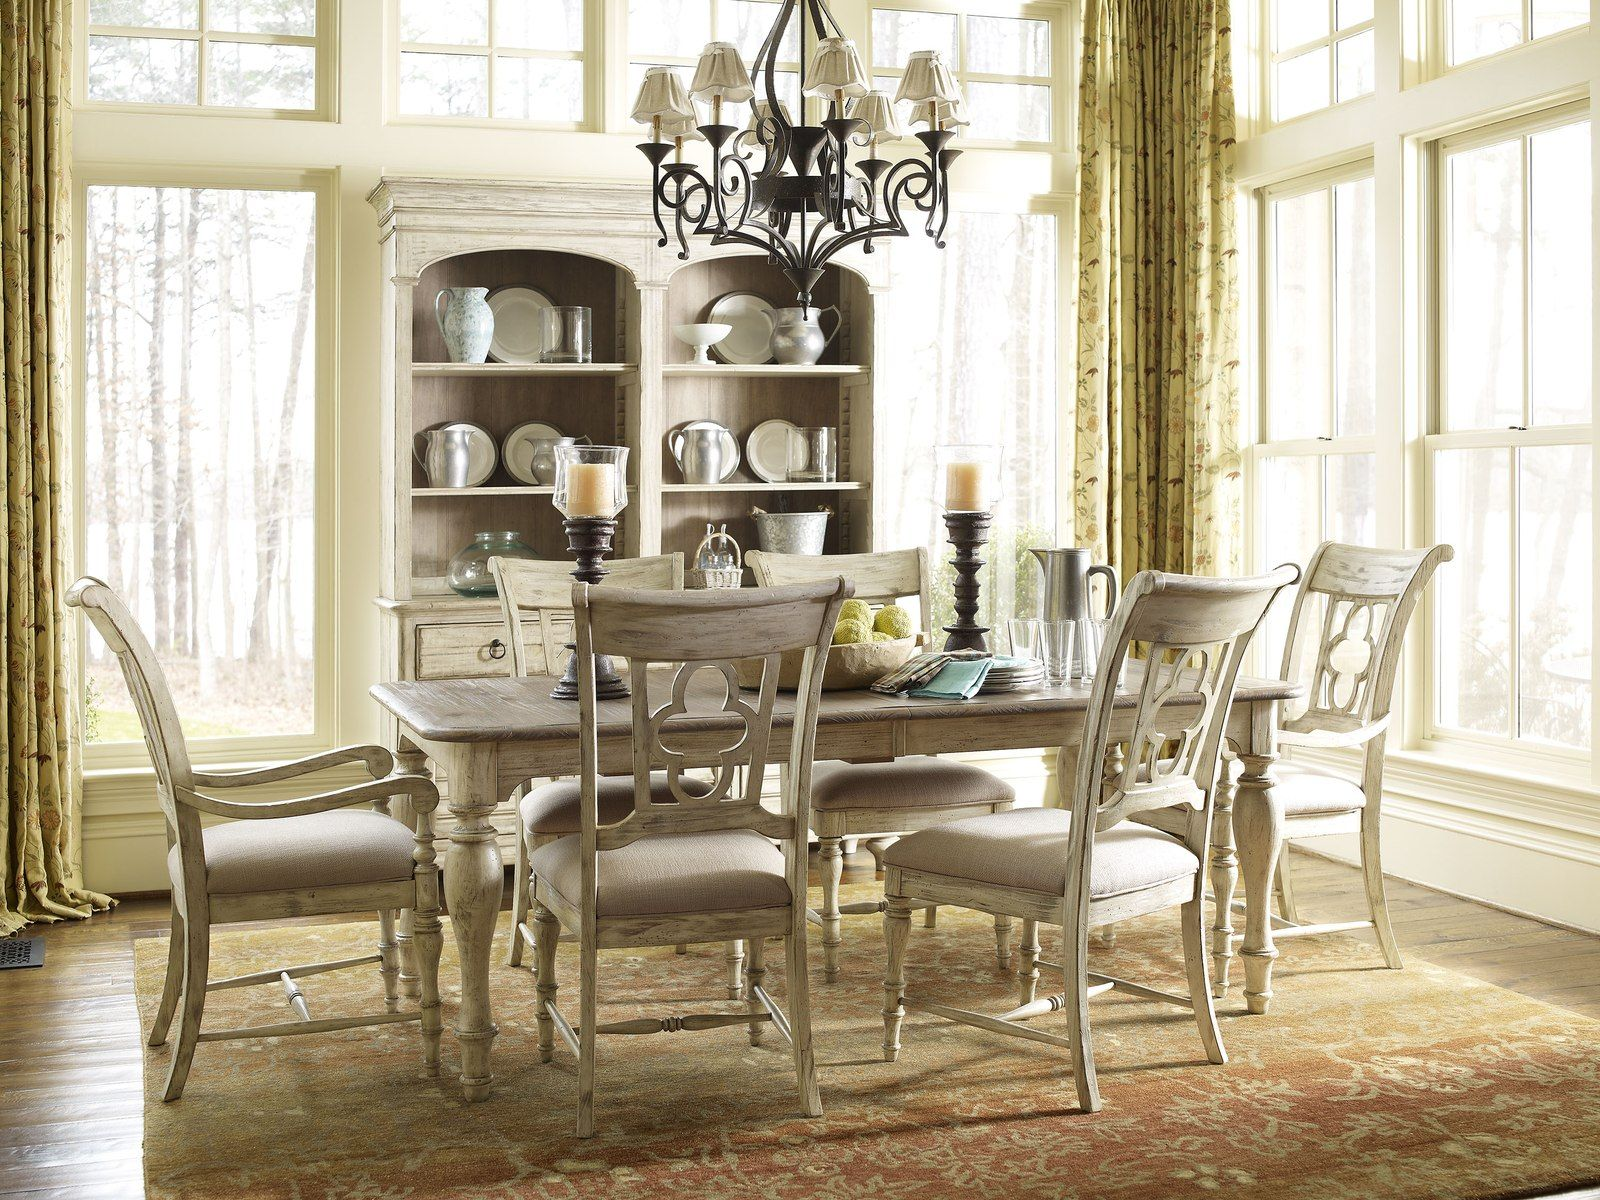 Kincaid Weatherford Canterbury Rectangular Dining Table Set In Cornsilk Finish By Dining Rooms Outlet Dining Room Furniture Formal Dining Room Sets Kincaid Furniture